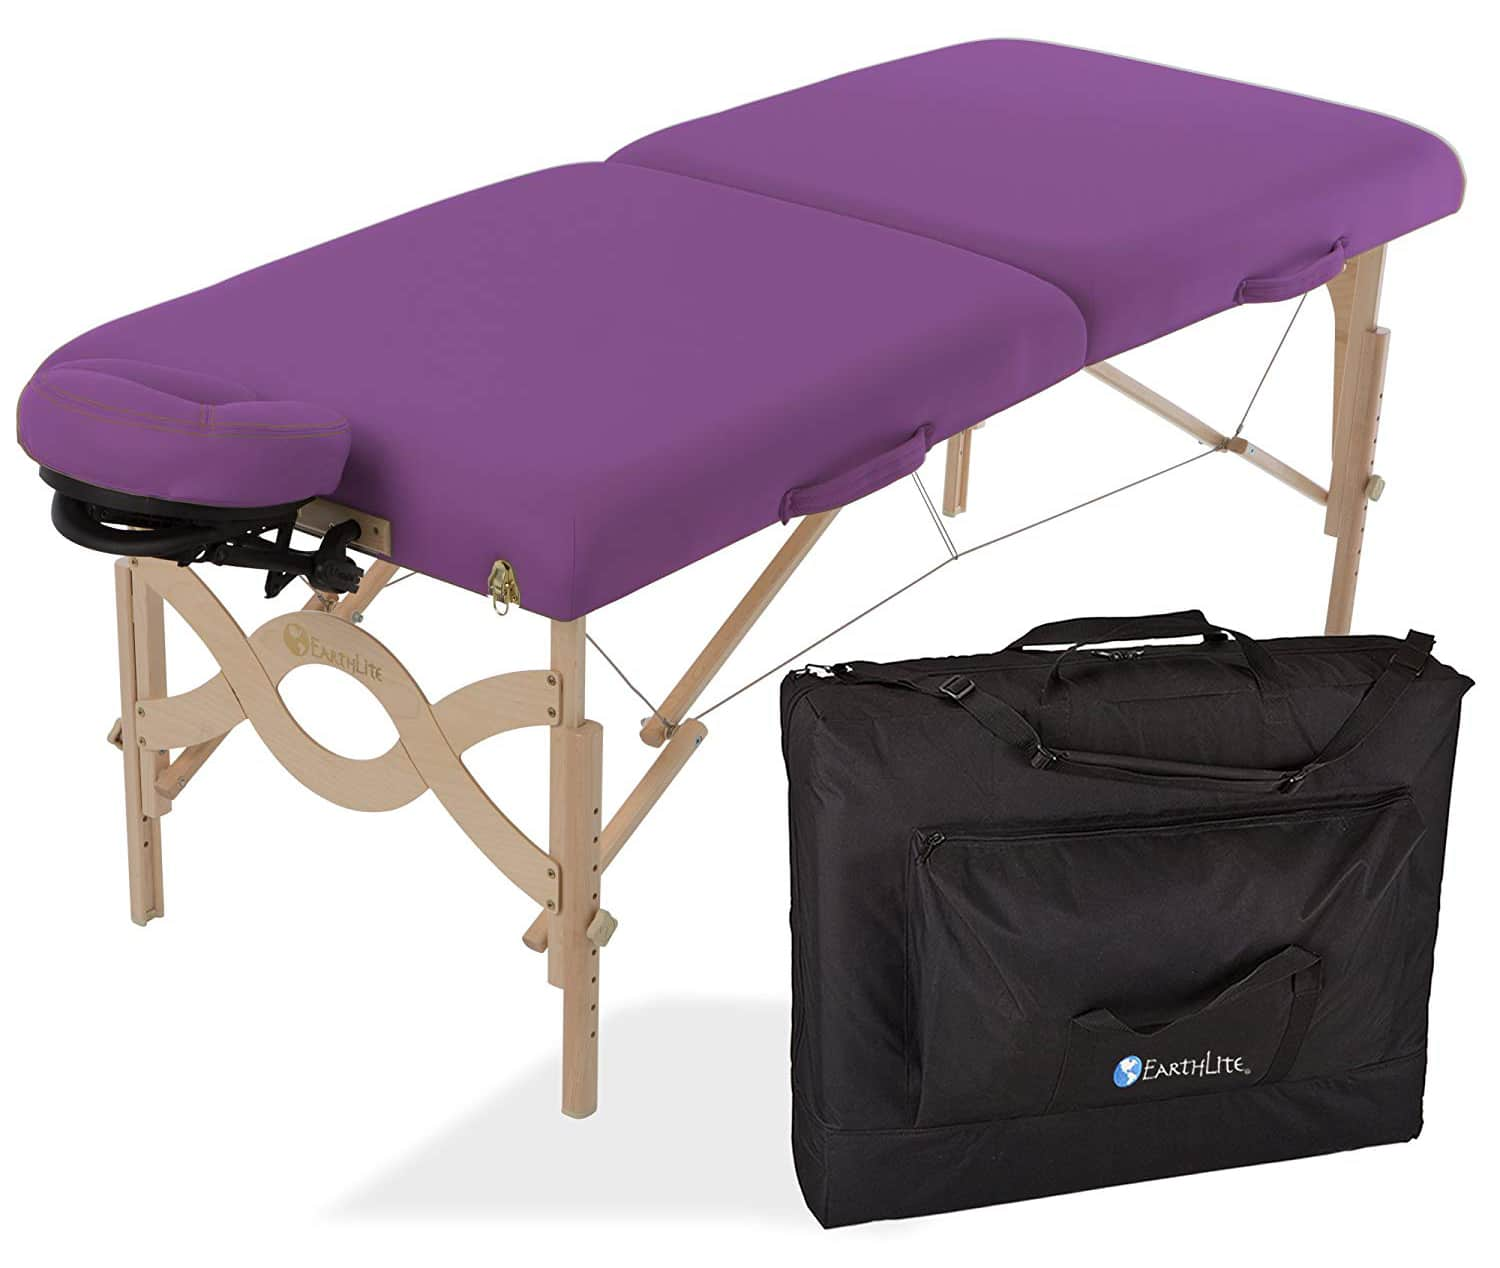 EARTHLITE Portable Massage Table Package AVALON – Reiki Endplate, Premium Flex-Rest Face Cradle & Strata Cushion